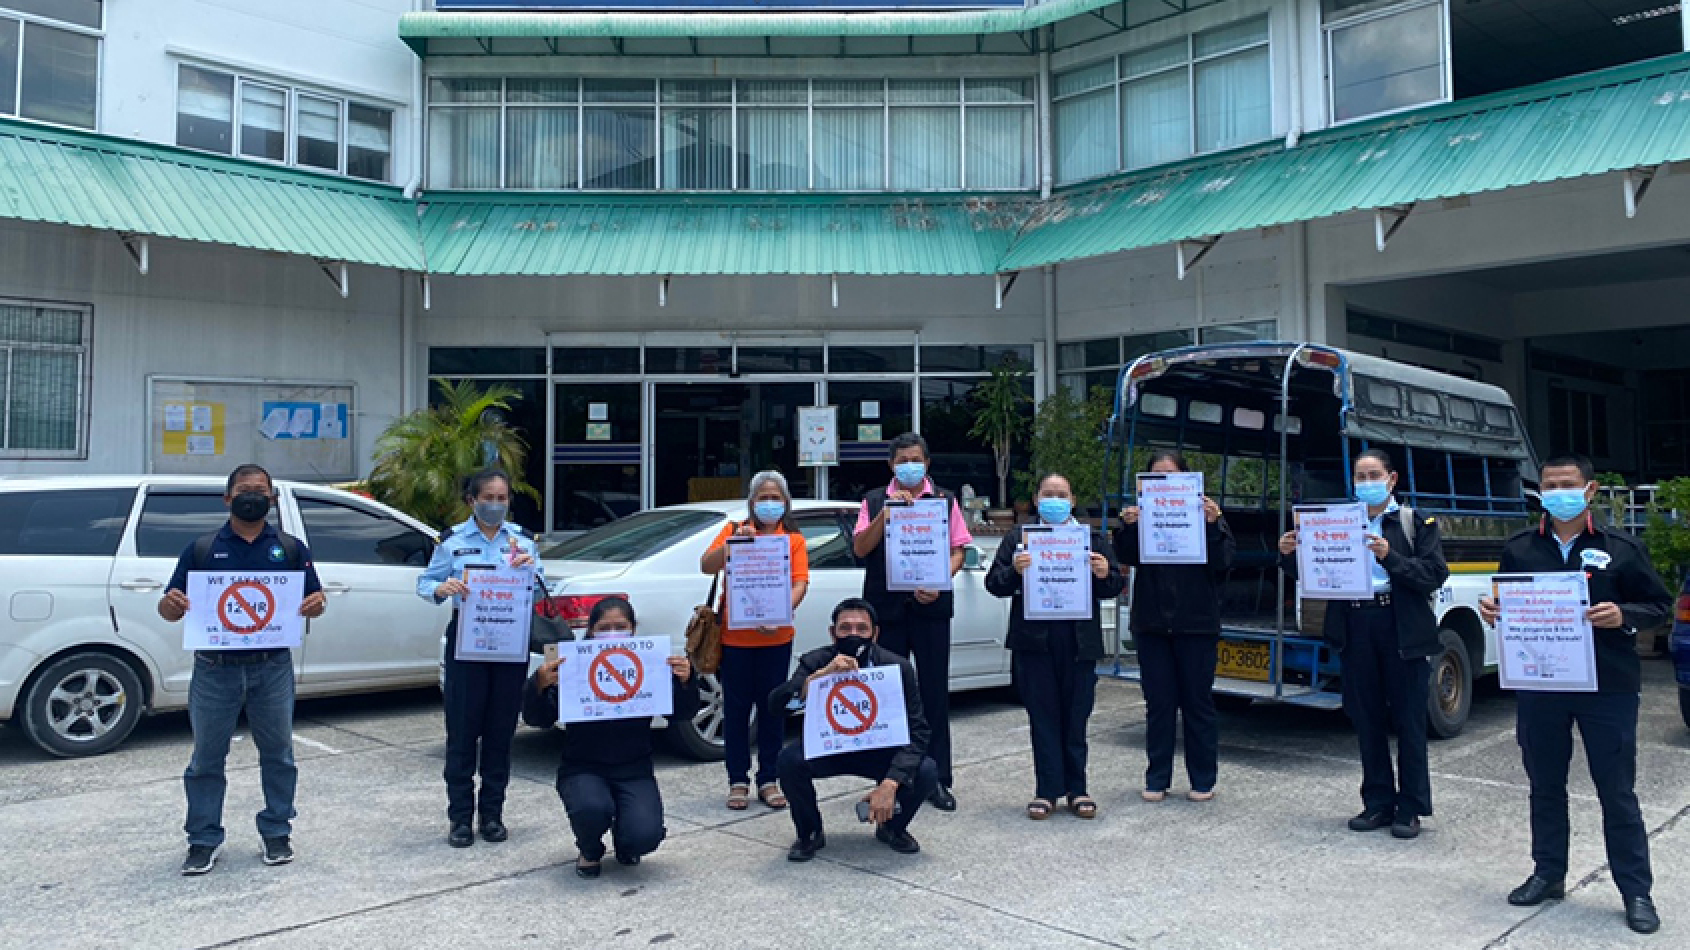 Thai airport security workers win back their basic working rights